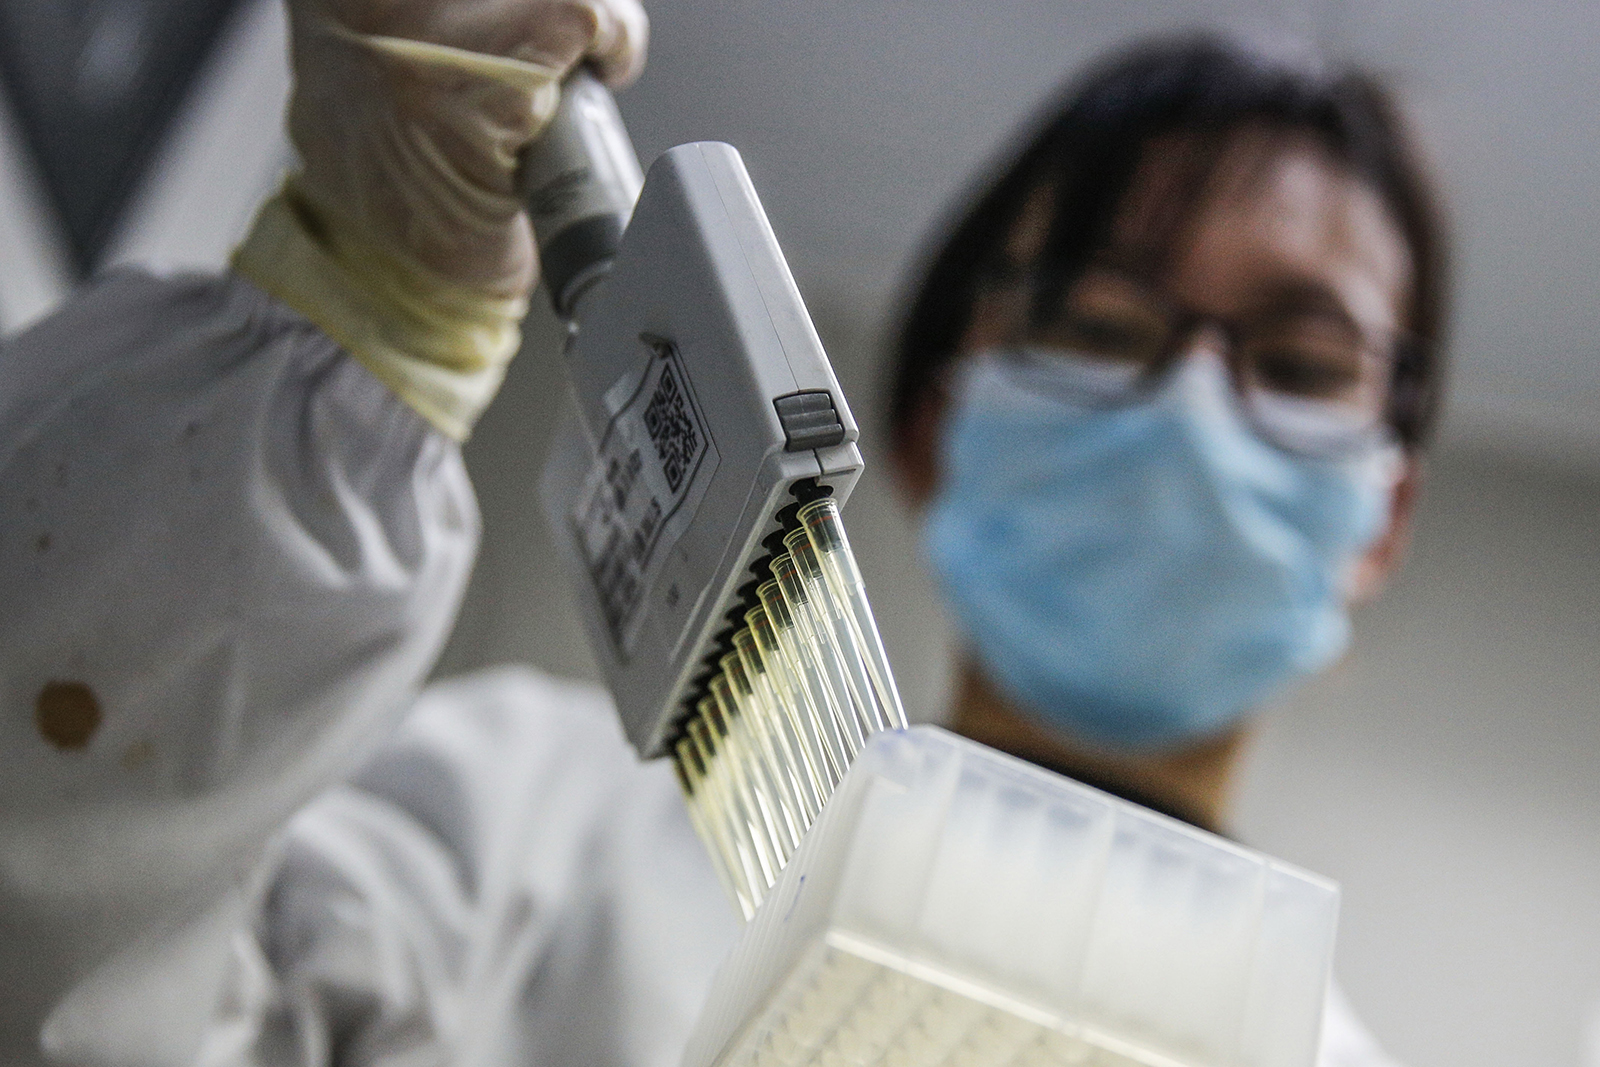 A staff member tests samples of the Covid-19 inactivated vaccine at a Sinovac Lab in Beijing on March 16.